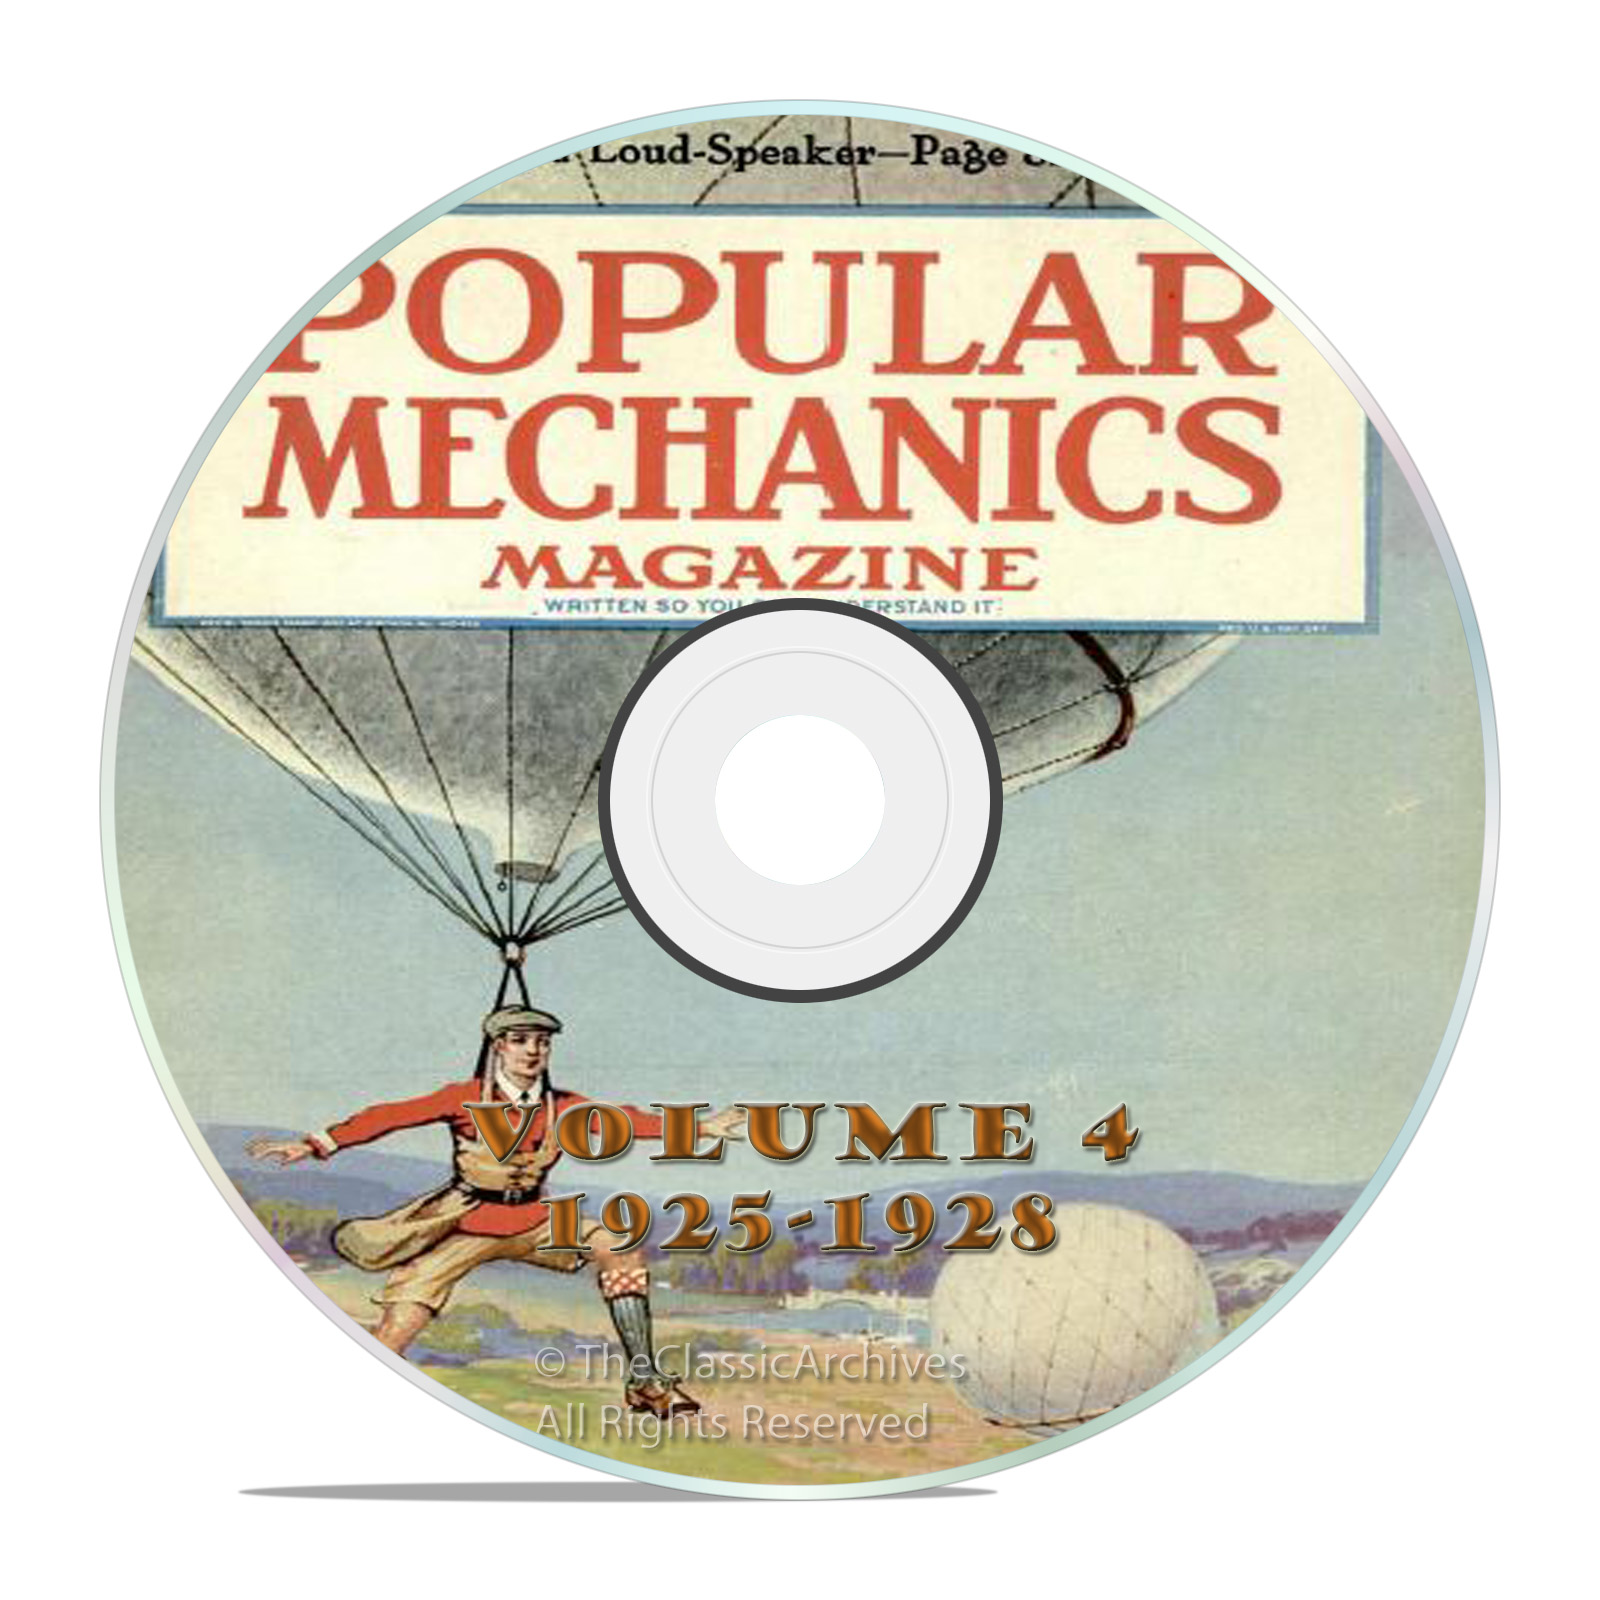 Vintage Popular Mechanics Magazine, Volume 4 DVD, 1925-1928, 46 issues